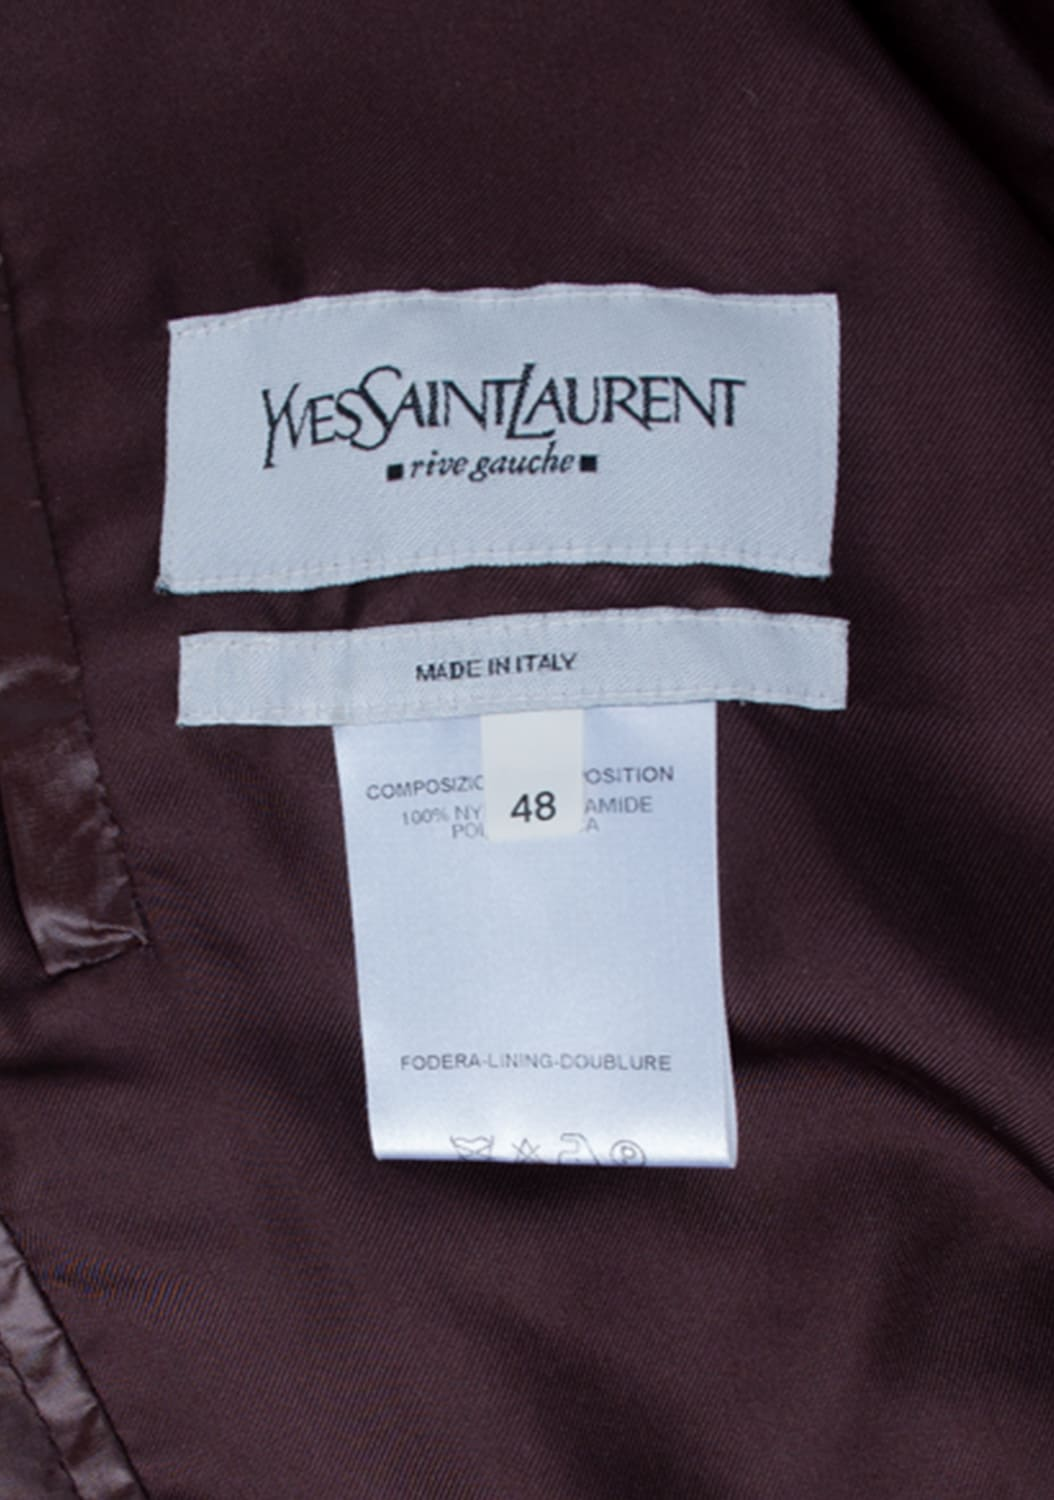 Yves-Saint-Laurent-Rive-Gauche-Thin-Windcheater-Men-Jacket-Size-48-ITA-urocklt (6)